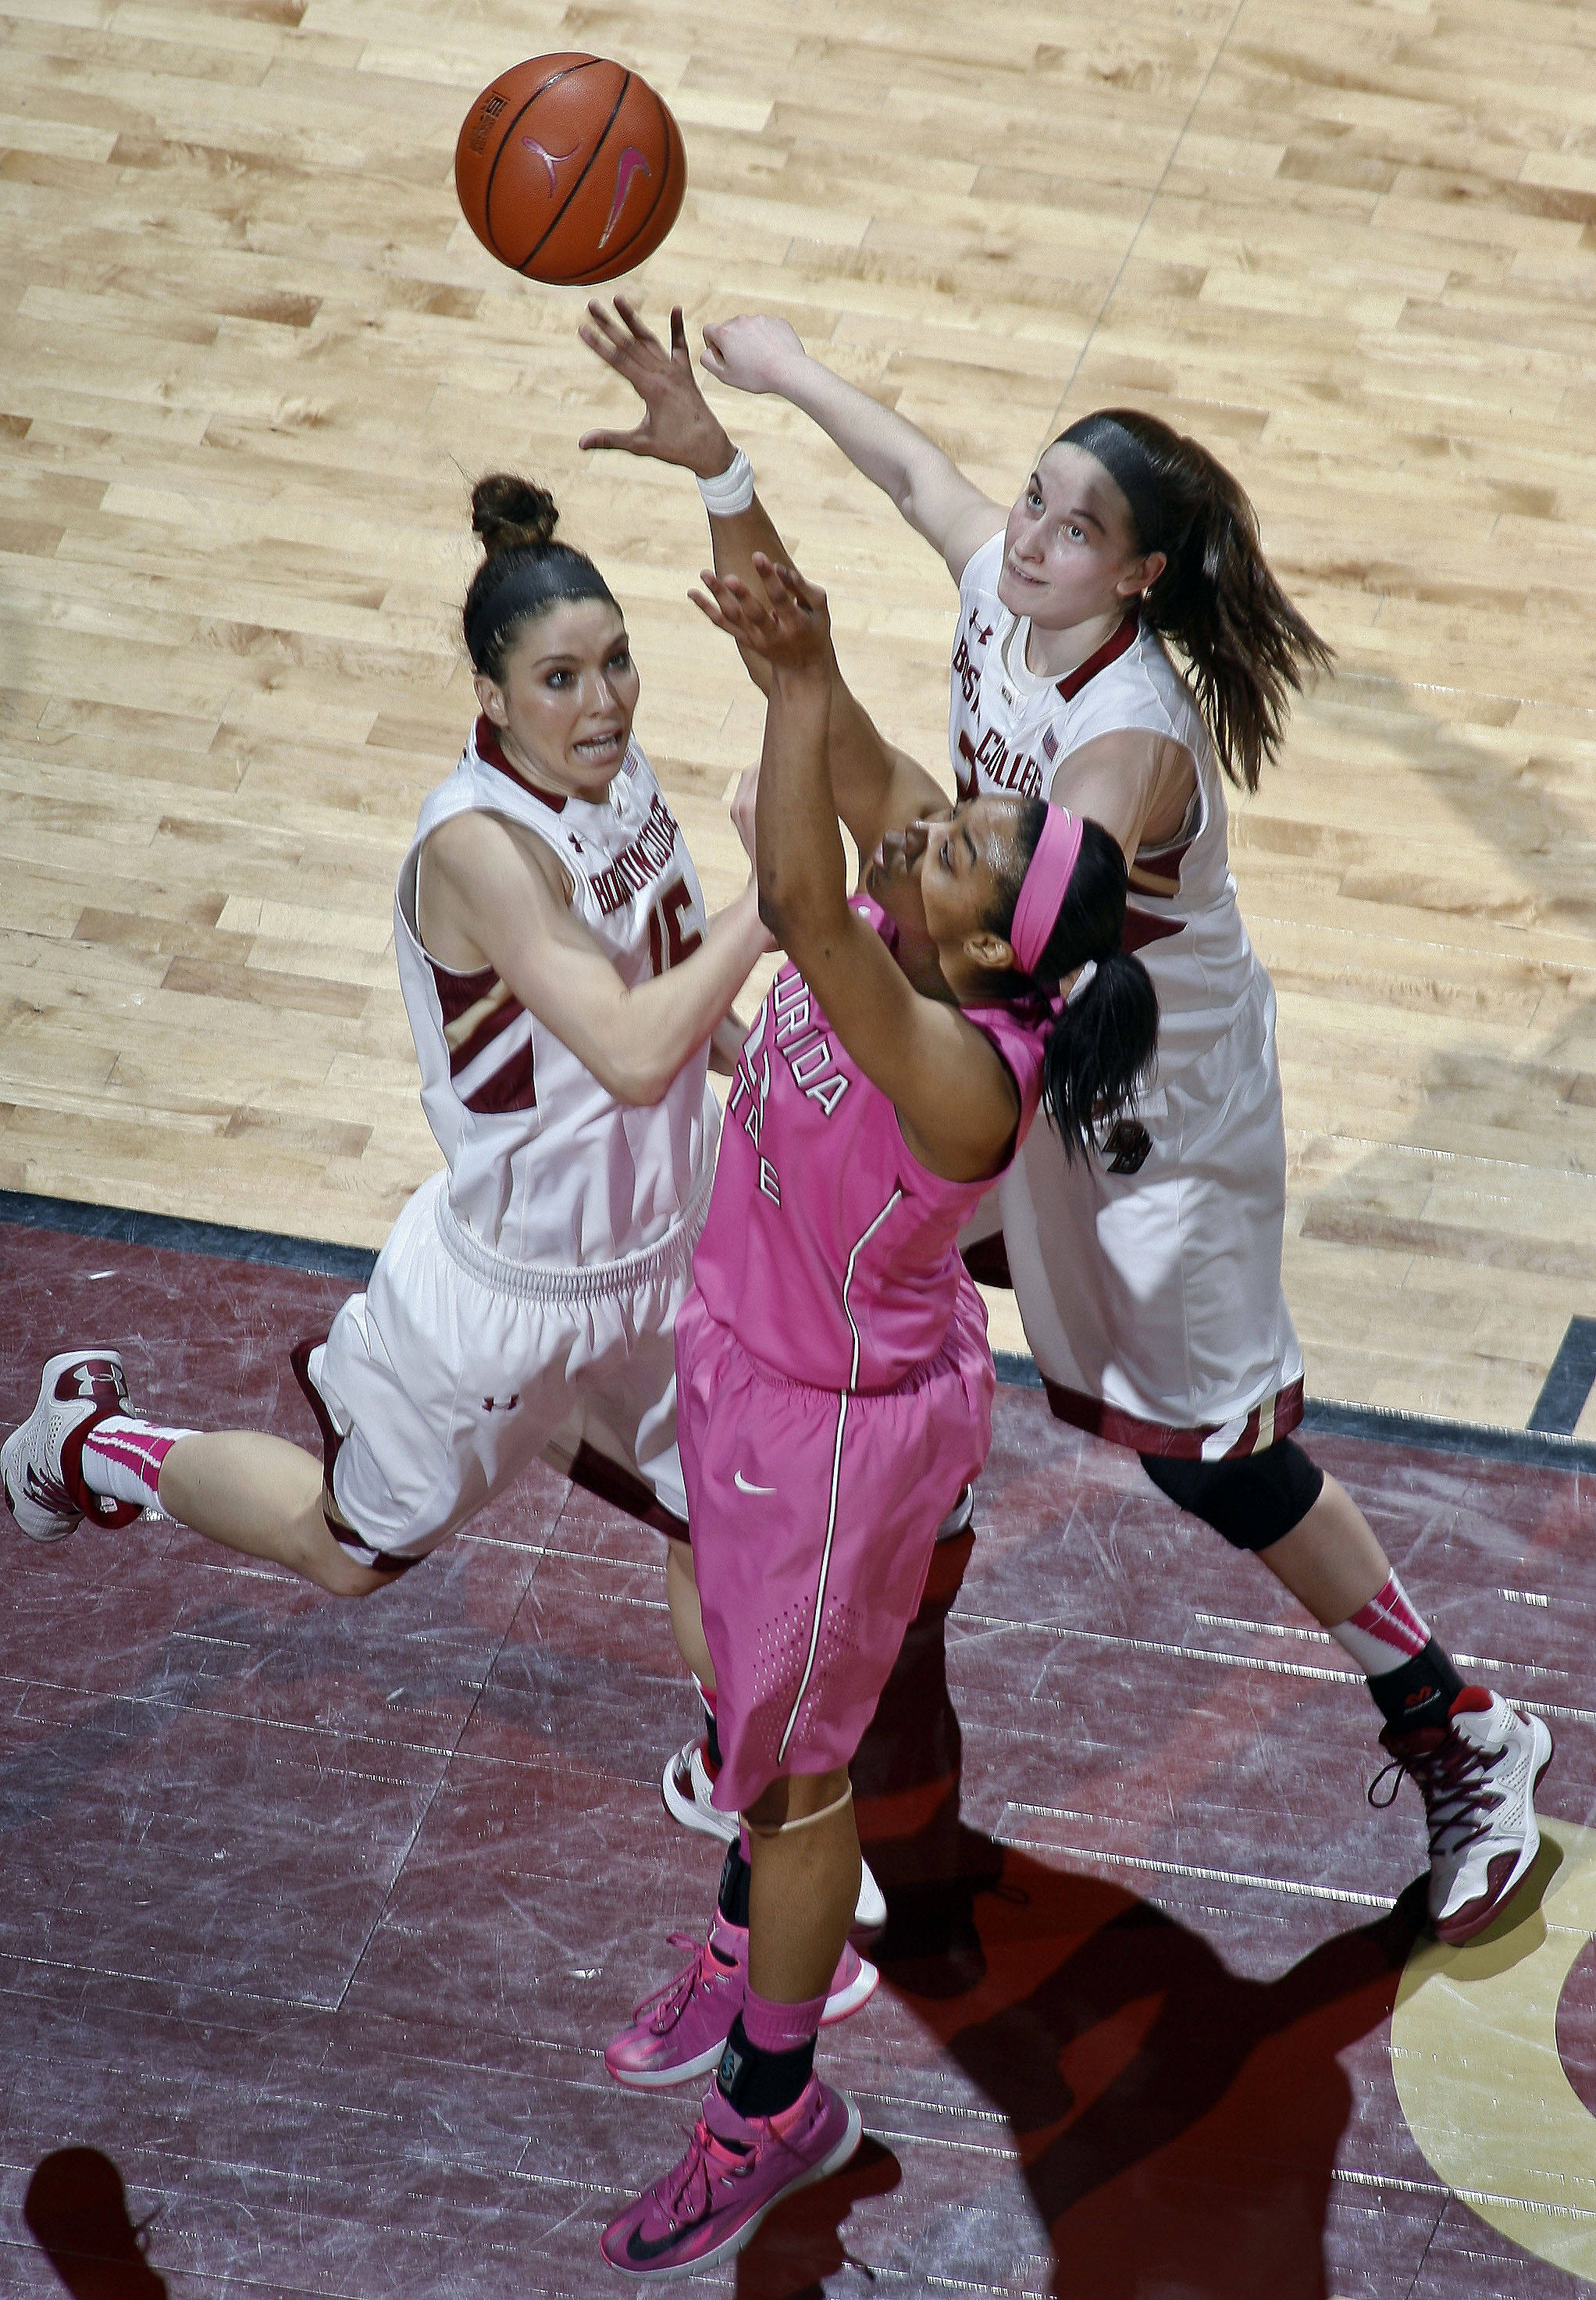 Florida State Seminoles forward Ivey Slaughter (23) shoots the ball as Boston College Eagles guards Lauren Engeln (15) and Kelly Hughes (23) defend. Mandatory Credit: Phil Sears-USA TODAY Sports